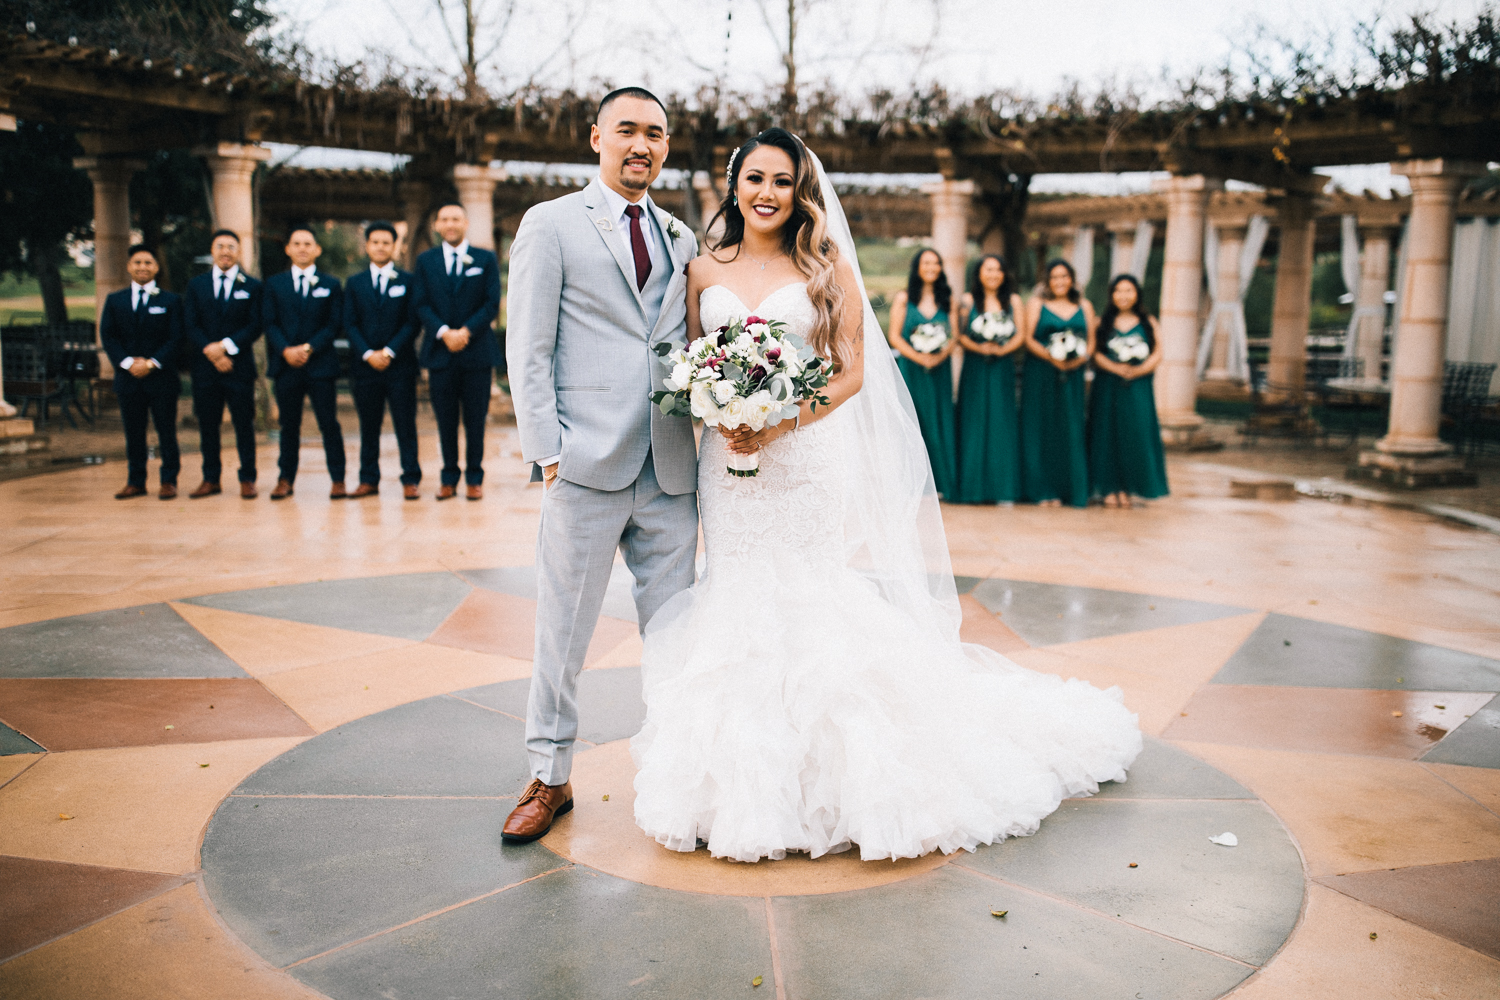 2019_01_ 202019.01.20 Santiago Wedding Blog Photos Edited For Web 0063.jpg